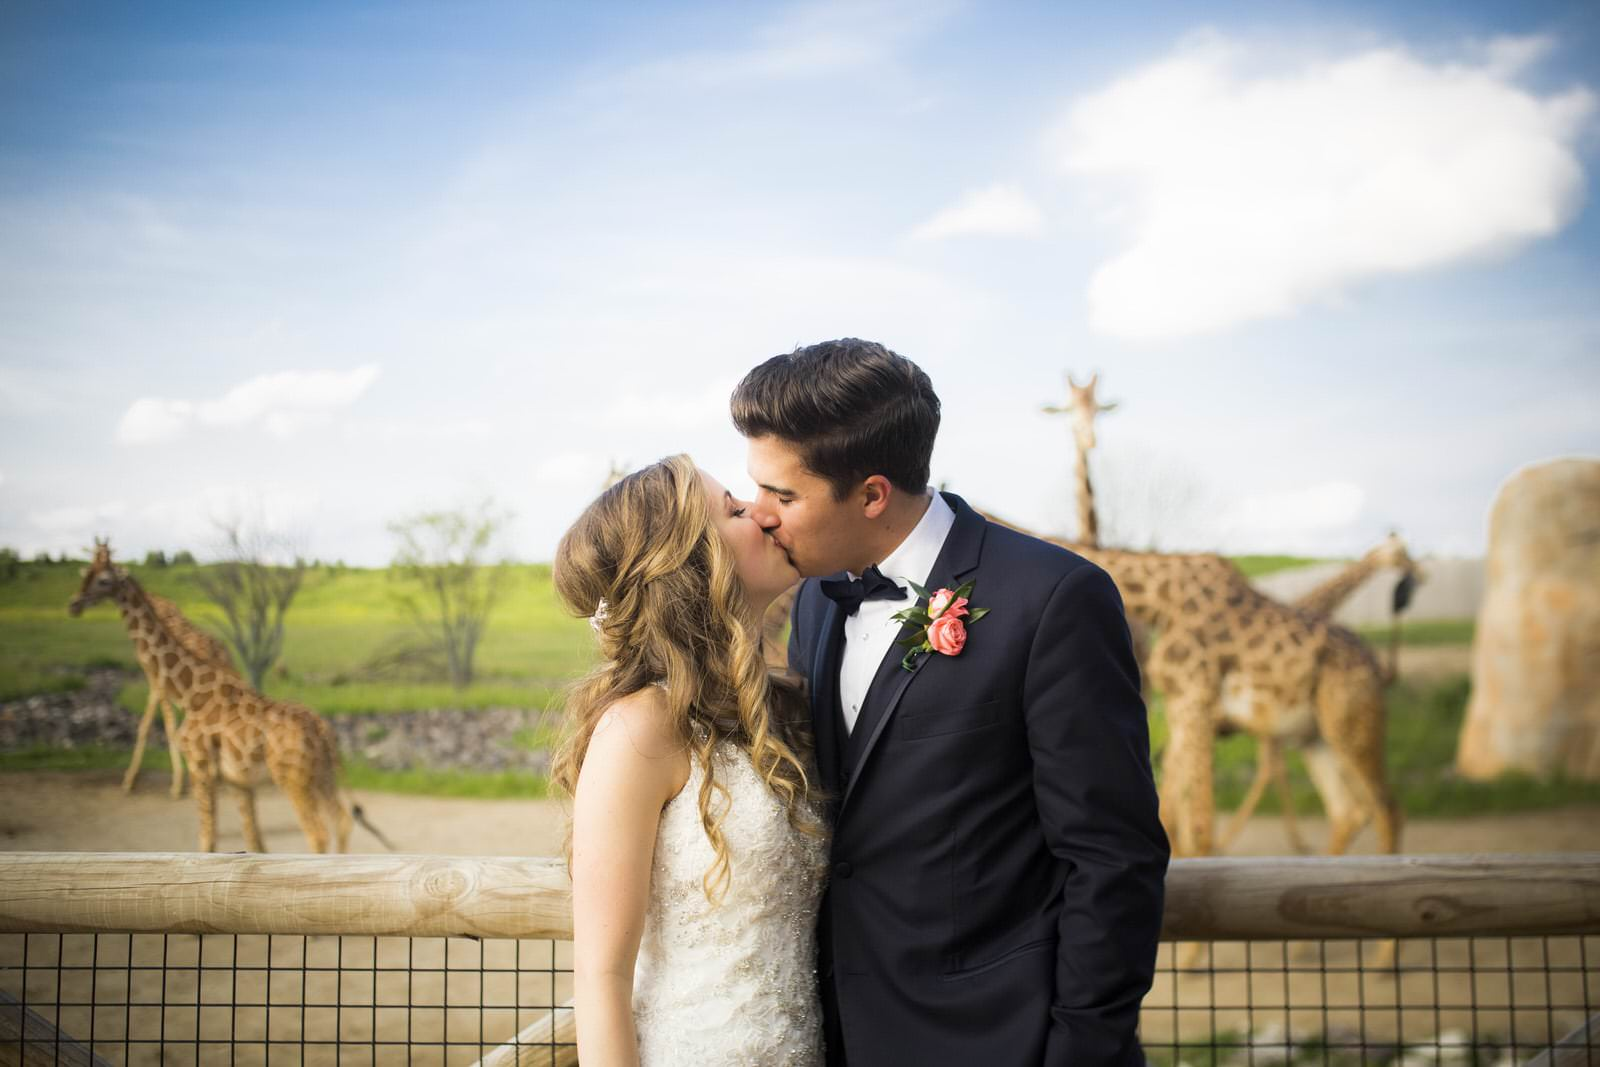 Victoria-Evan-Columbus-Zoo-spring-wedding-photography-by-Amy-Ann-Photography-00112